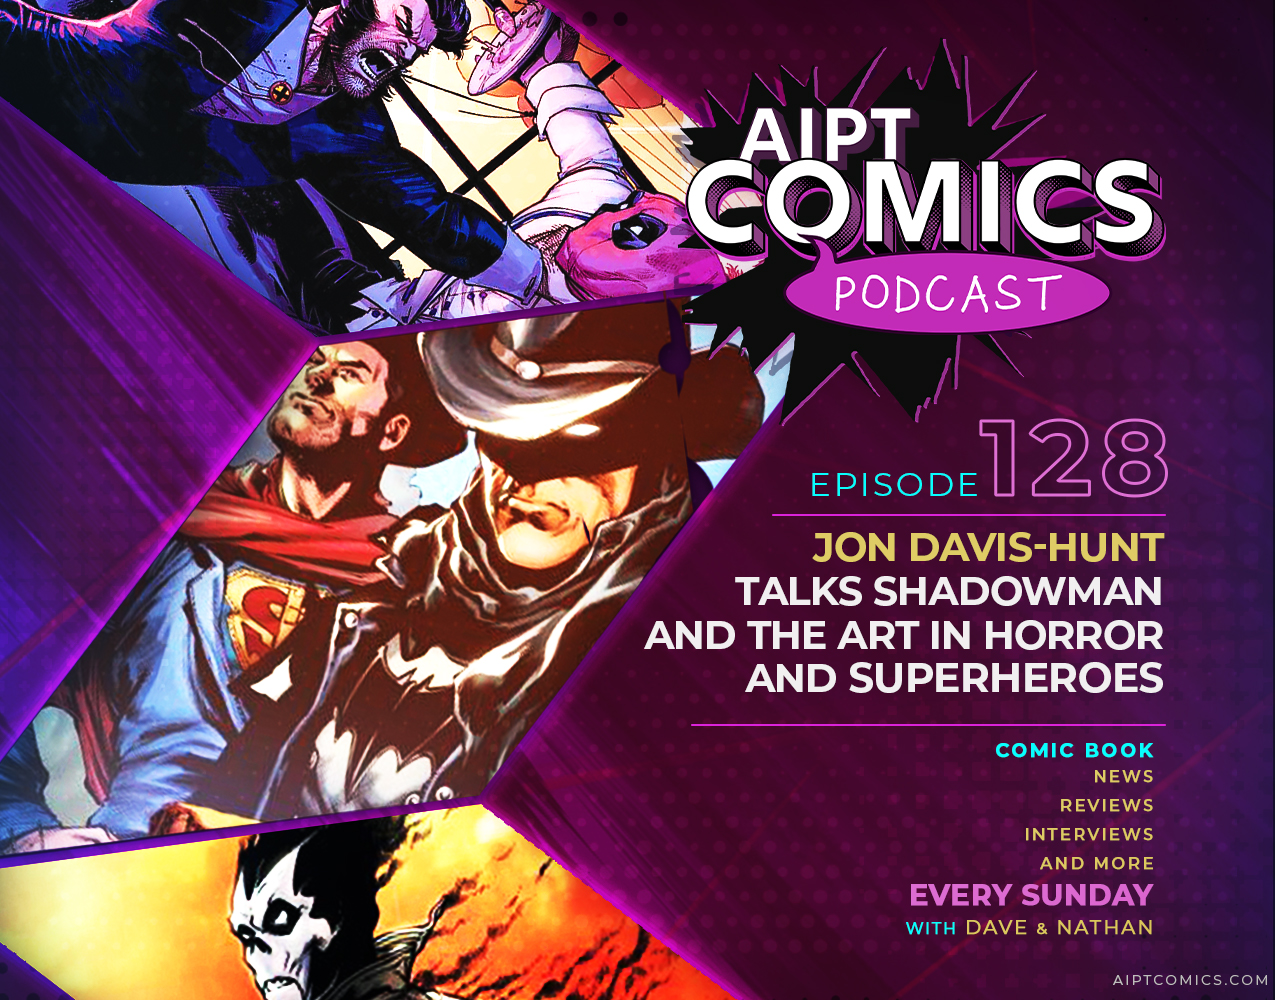 AIPT Comics Podcast Episode 128: Jon Davis-Hunt talks 'Shadowman' and the art in horror and superheroes